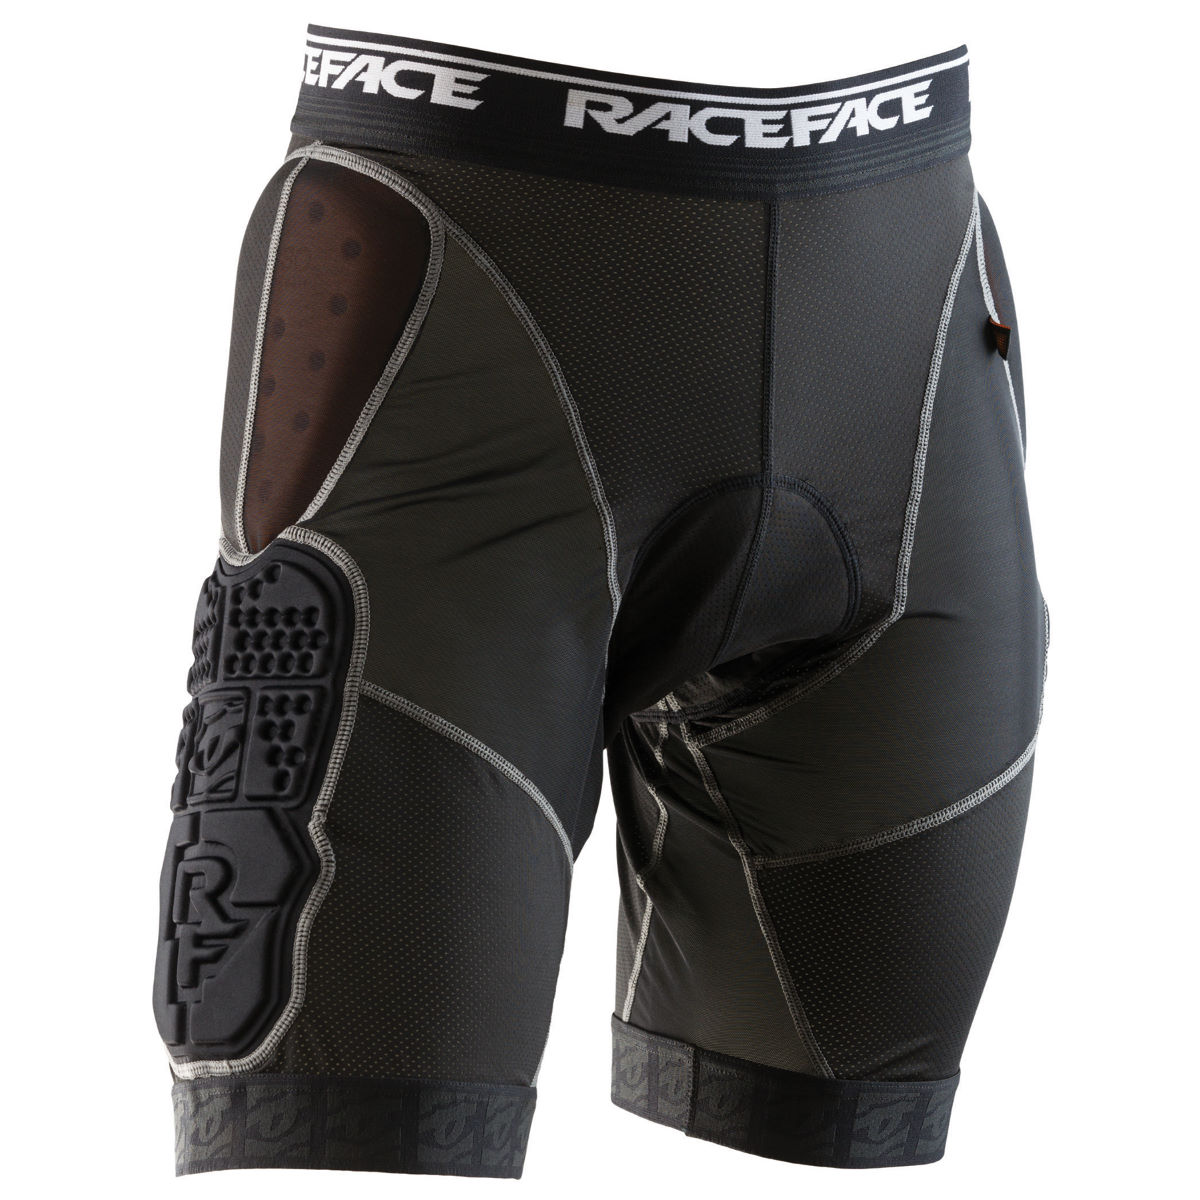 Culote acolchado Race Face Flank D30 - Pantalones protectores